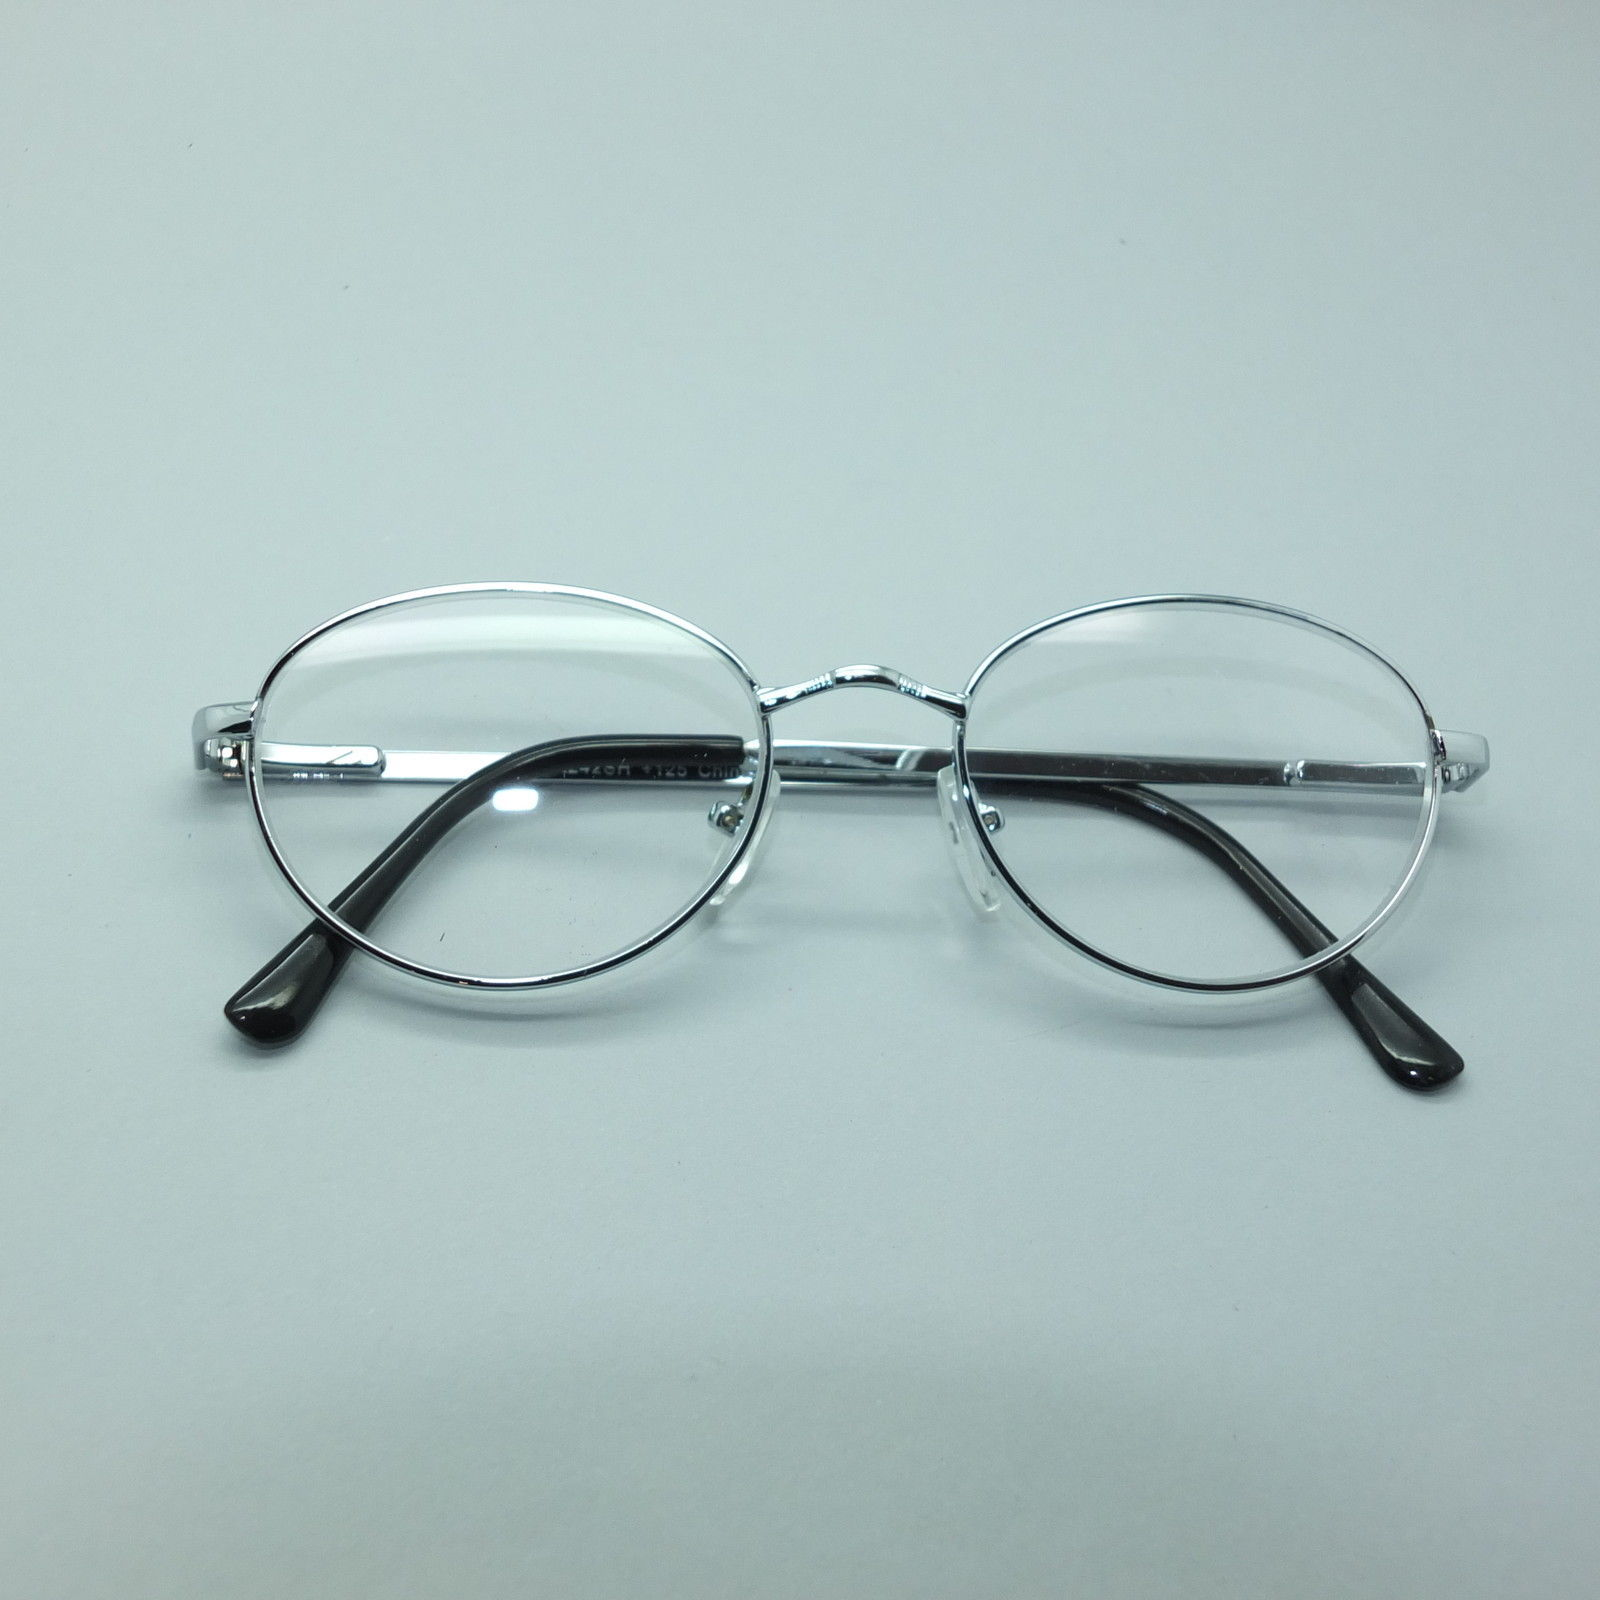 reading glasses silver wire pretty oval frame 1 25 lens